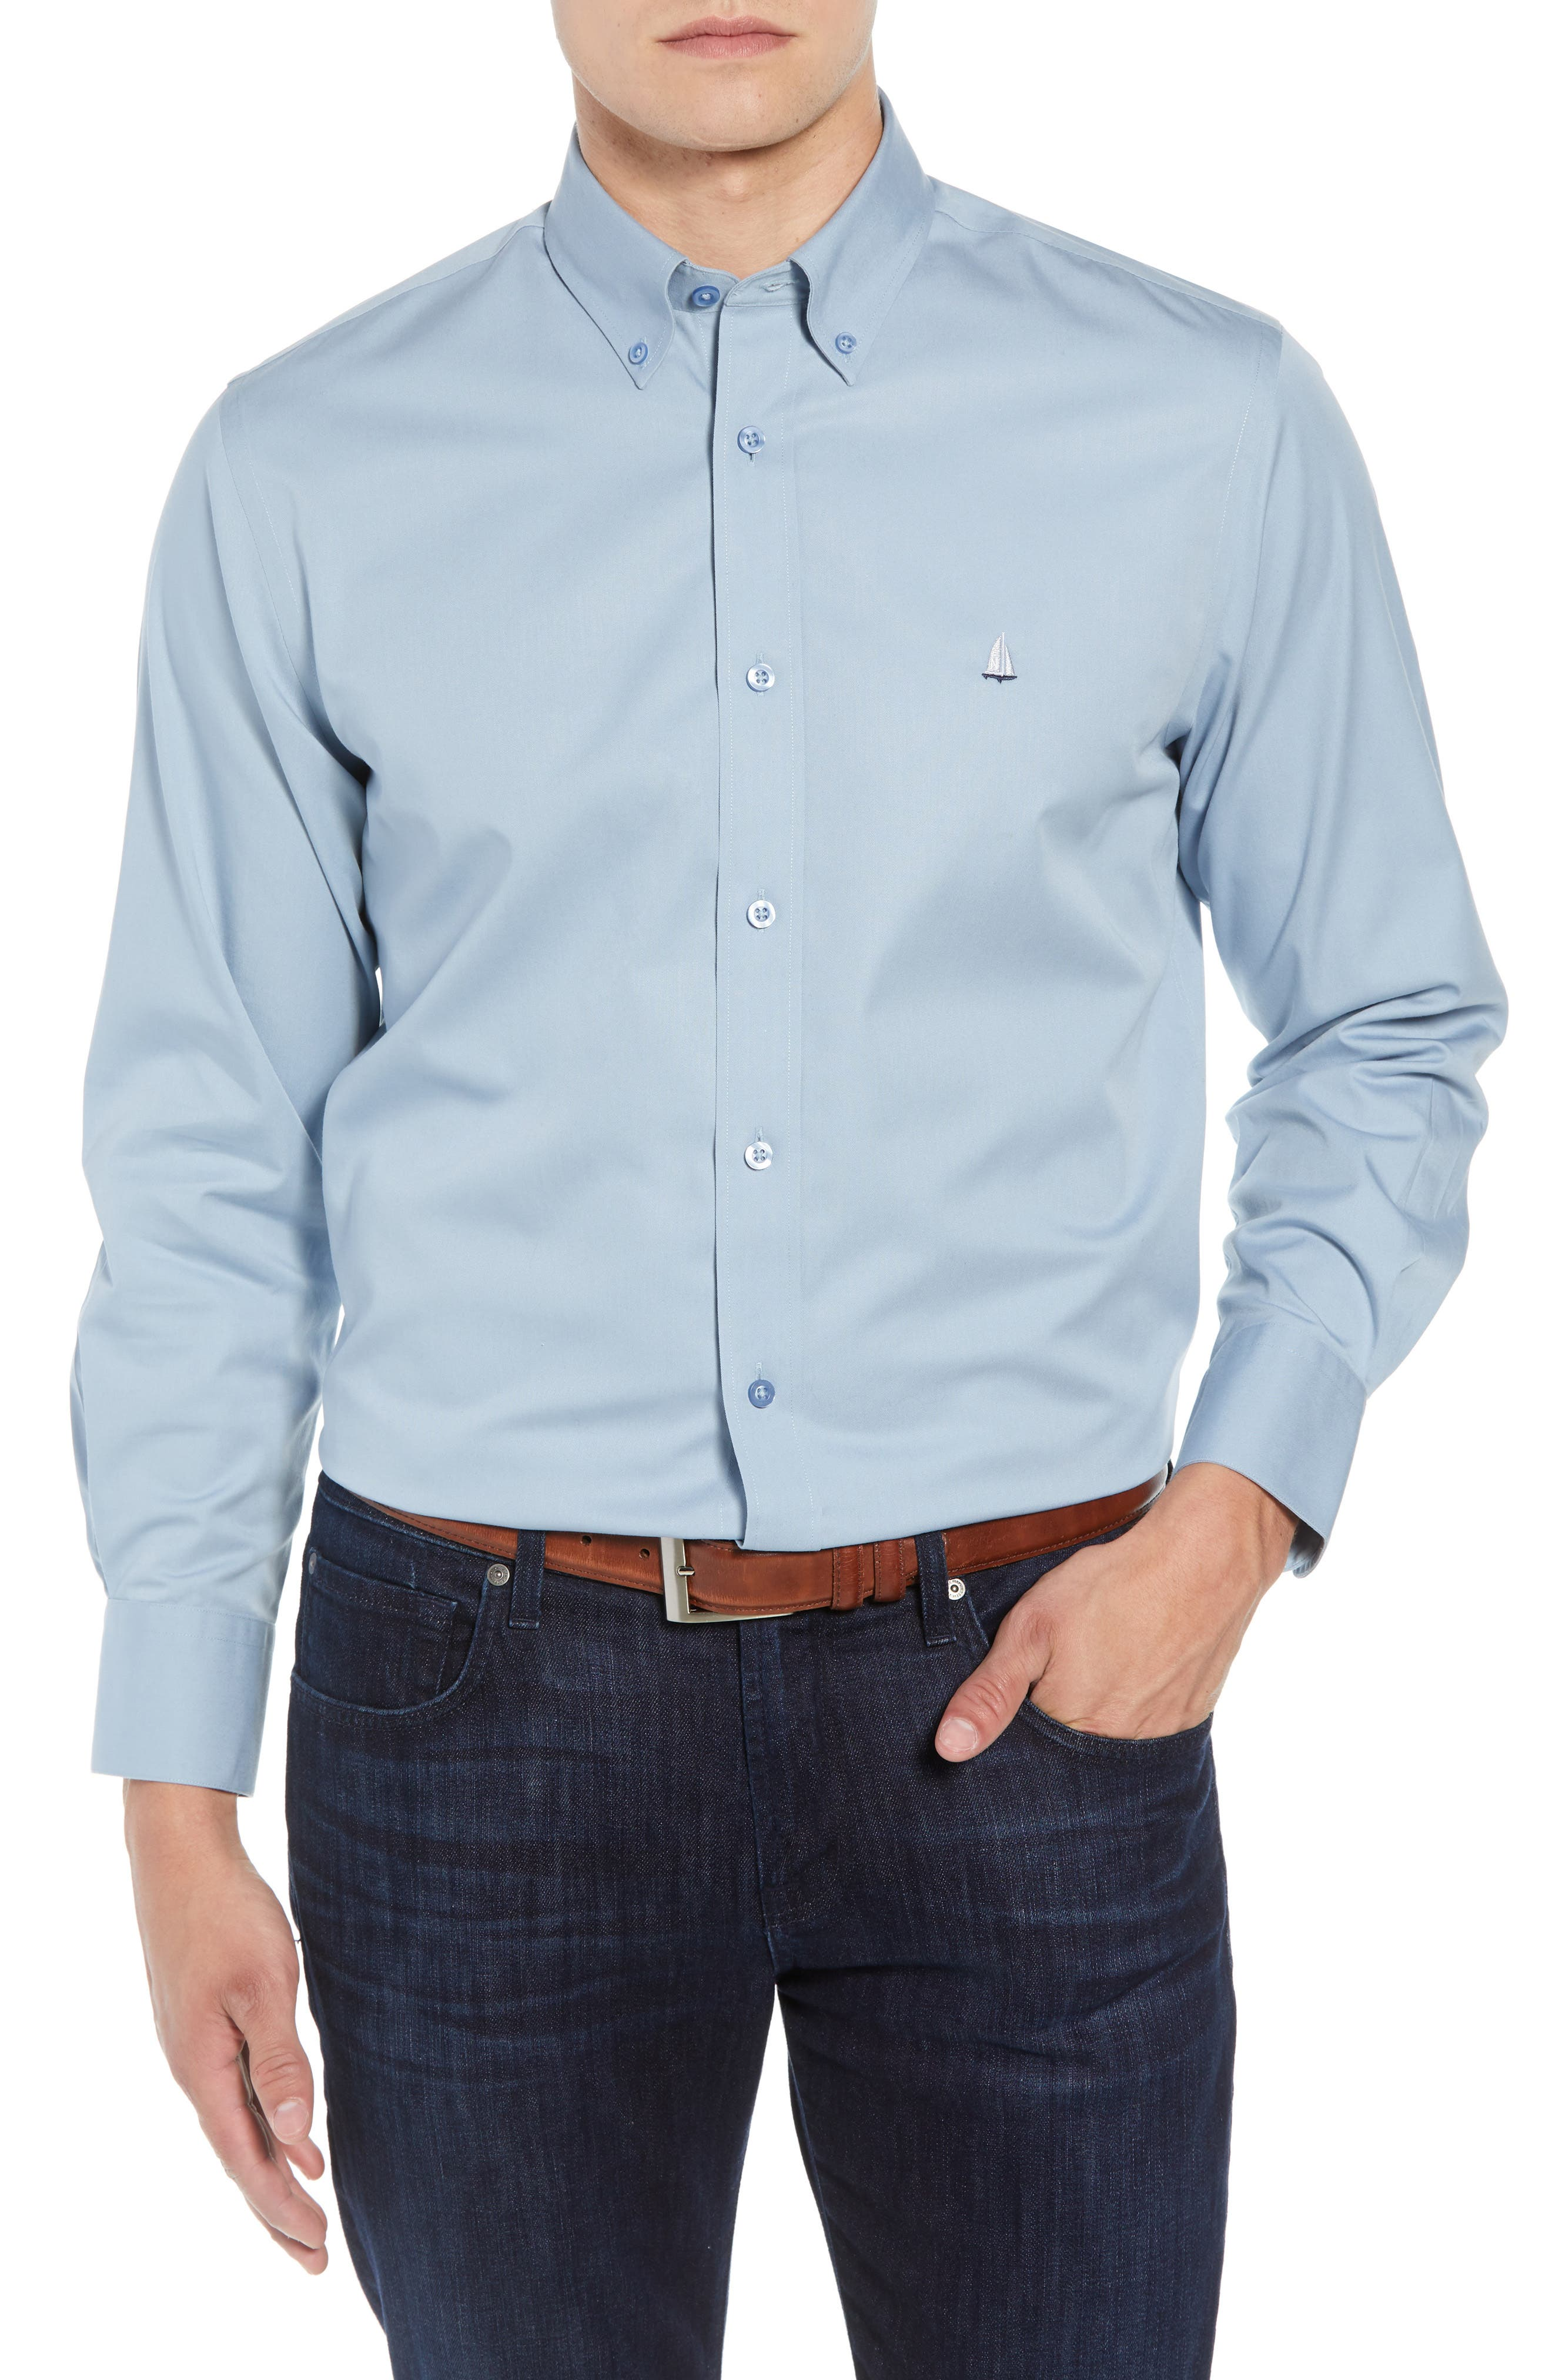 NORDSTROM MEN'S SHOP,                             Smartcare<sup>™</sup> Traditional Fit Twill Boat Shirt,                             Main thumbnail 1, color,                             BLUE DRIZZLE